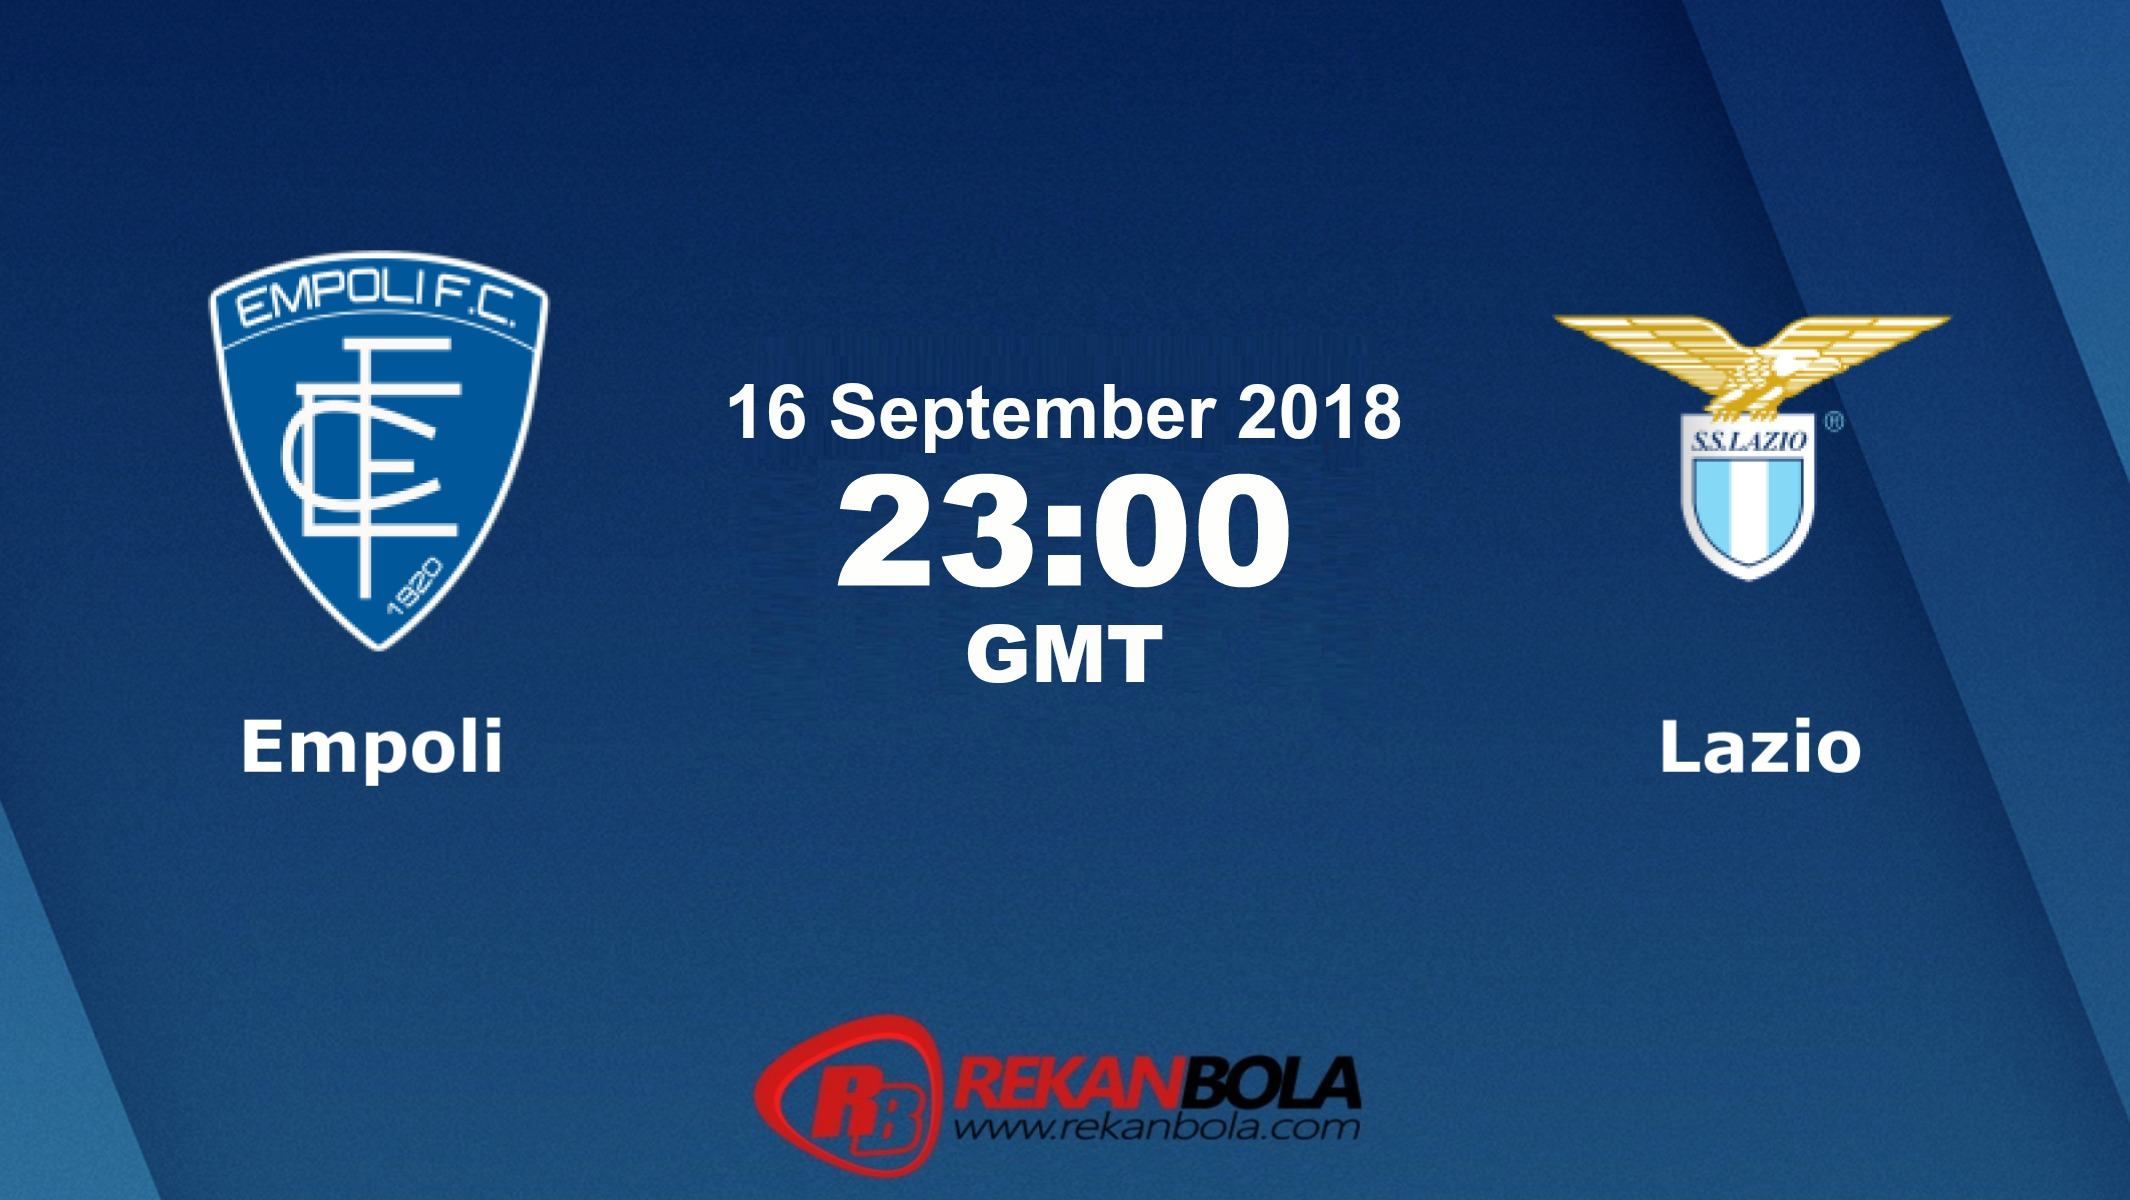 Nonton Siaran Live Streaming Empoli Vs Lazio 16 September 2018